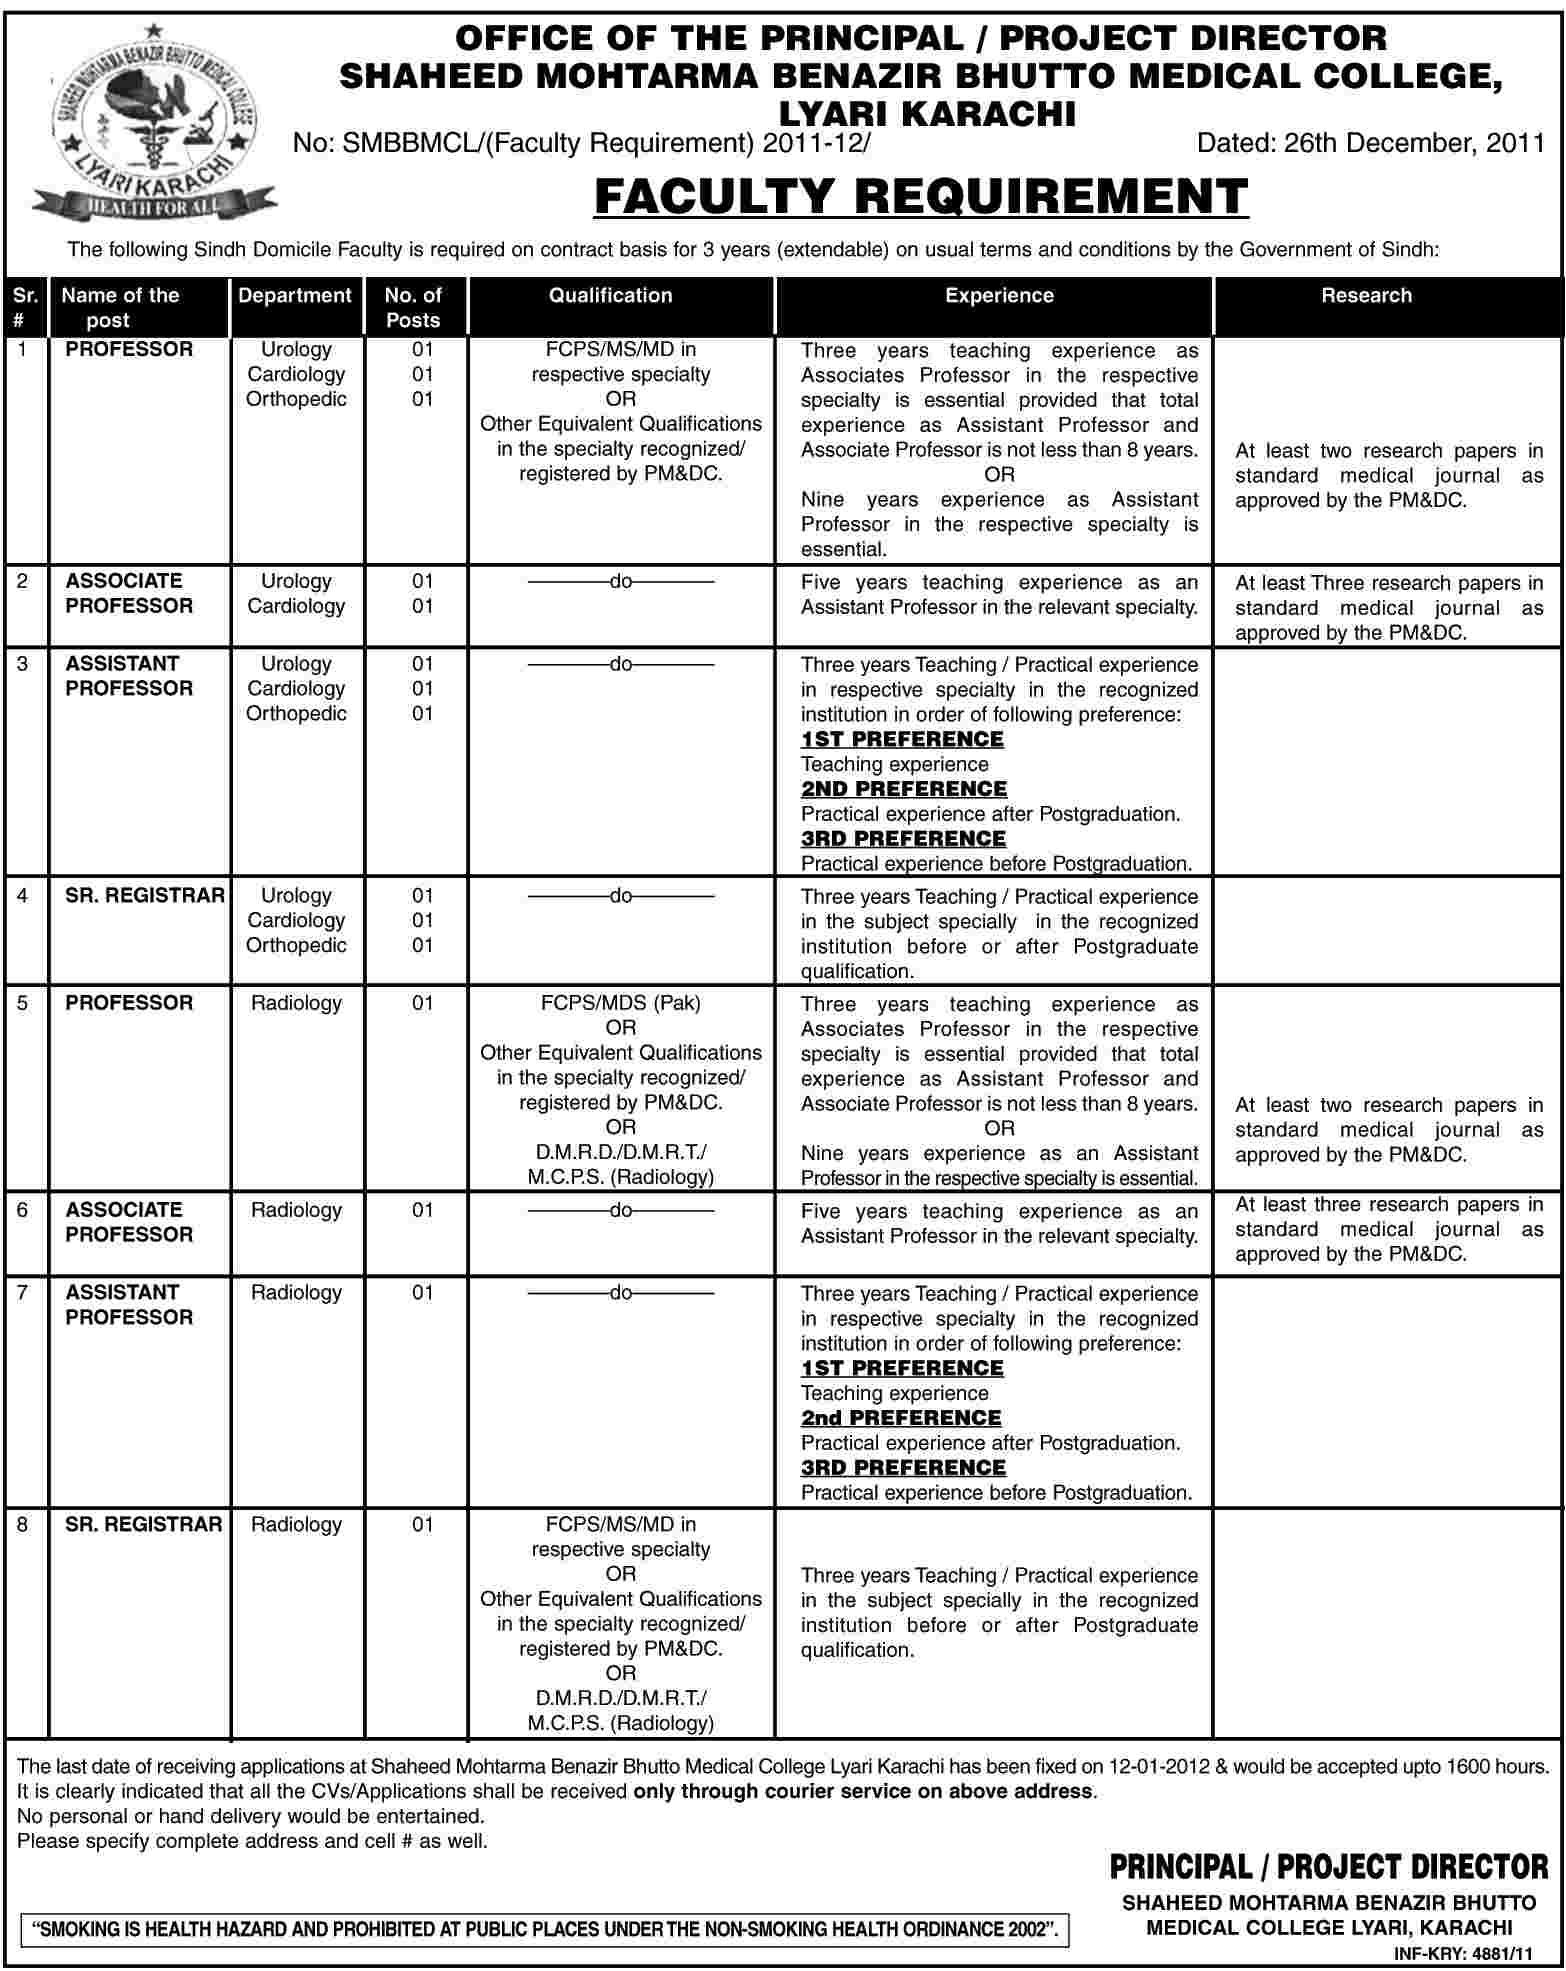 Office of the Principal/Project Director, Shaheed Mohtarma Benazir Bhutto Medical College, Karachi Jobs Opportunity